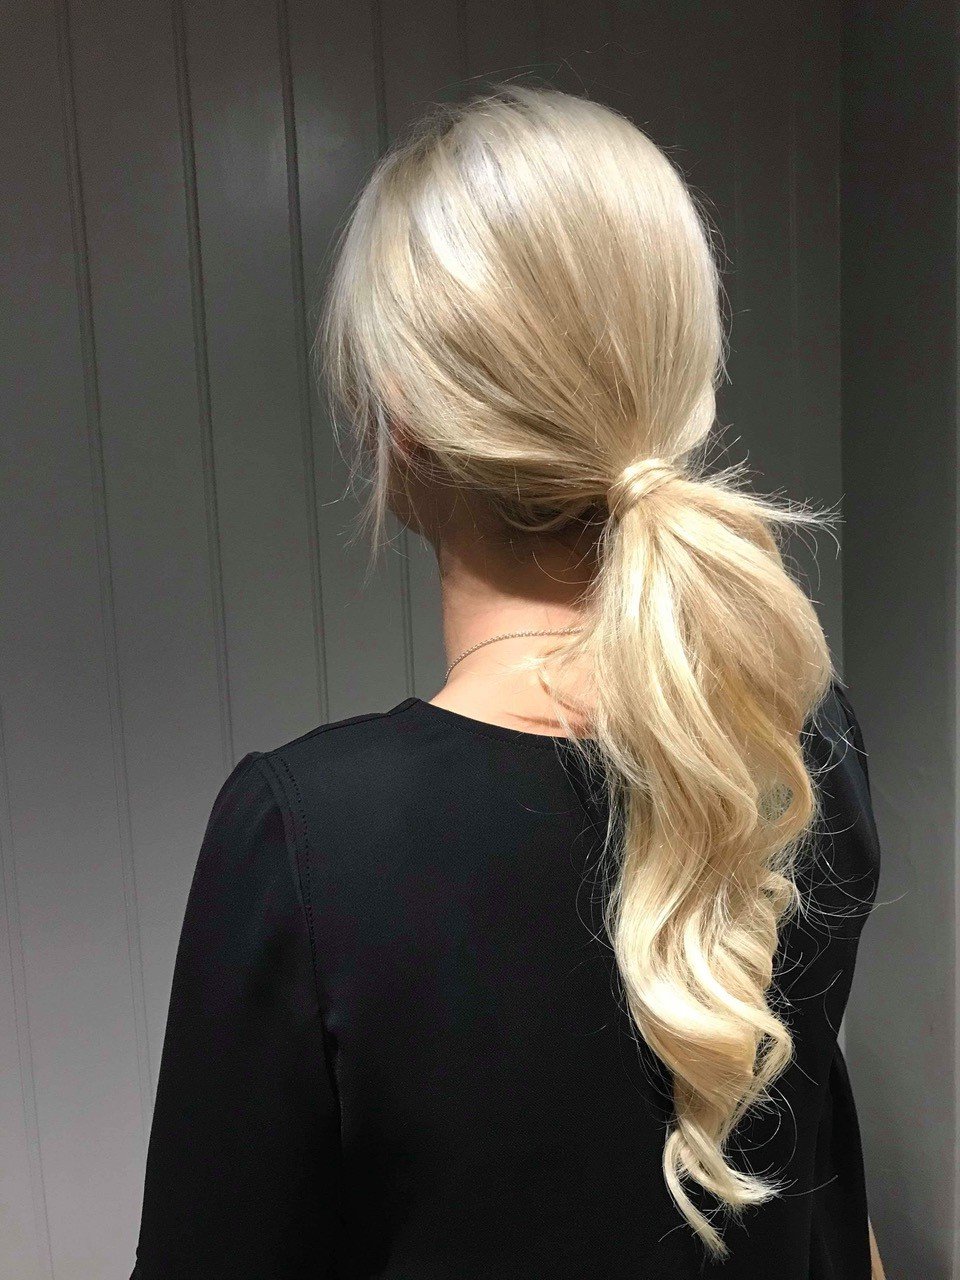 Widely Used Low Ponytail Hairstyles Within 3 Ways To Style A Low Ponytail Without Looking Like A (Gallery 12 of 20)